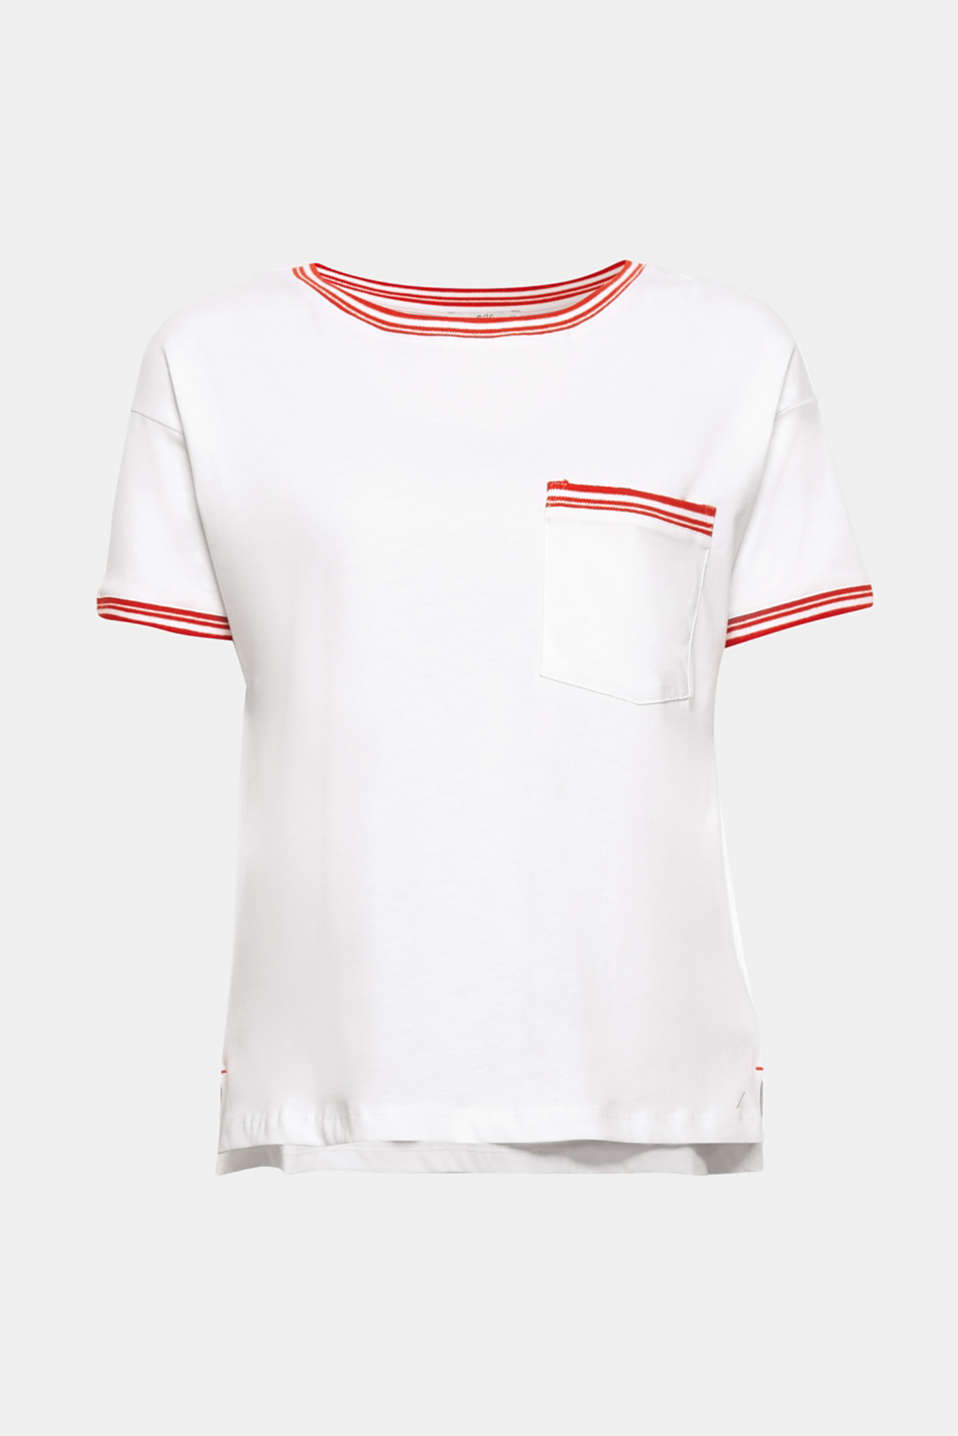 A sporty oversized look with retro appeal! The striped ribbed trims make this boxy T-shirt a real eye-catcher.